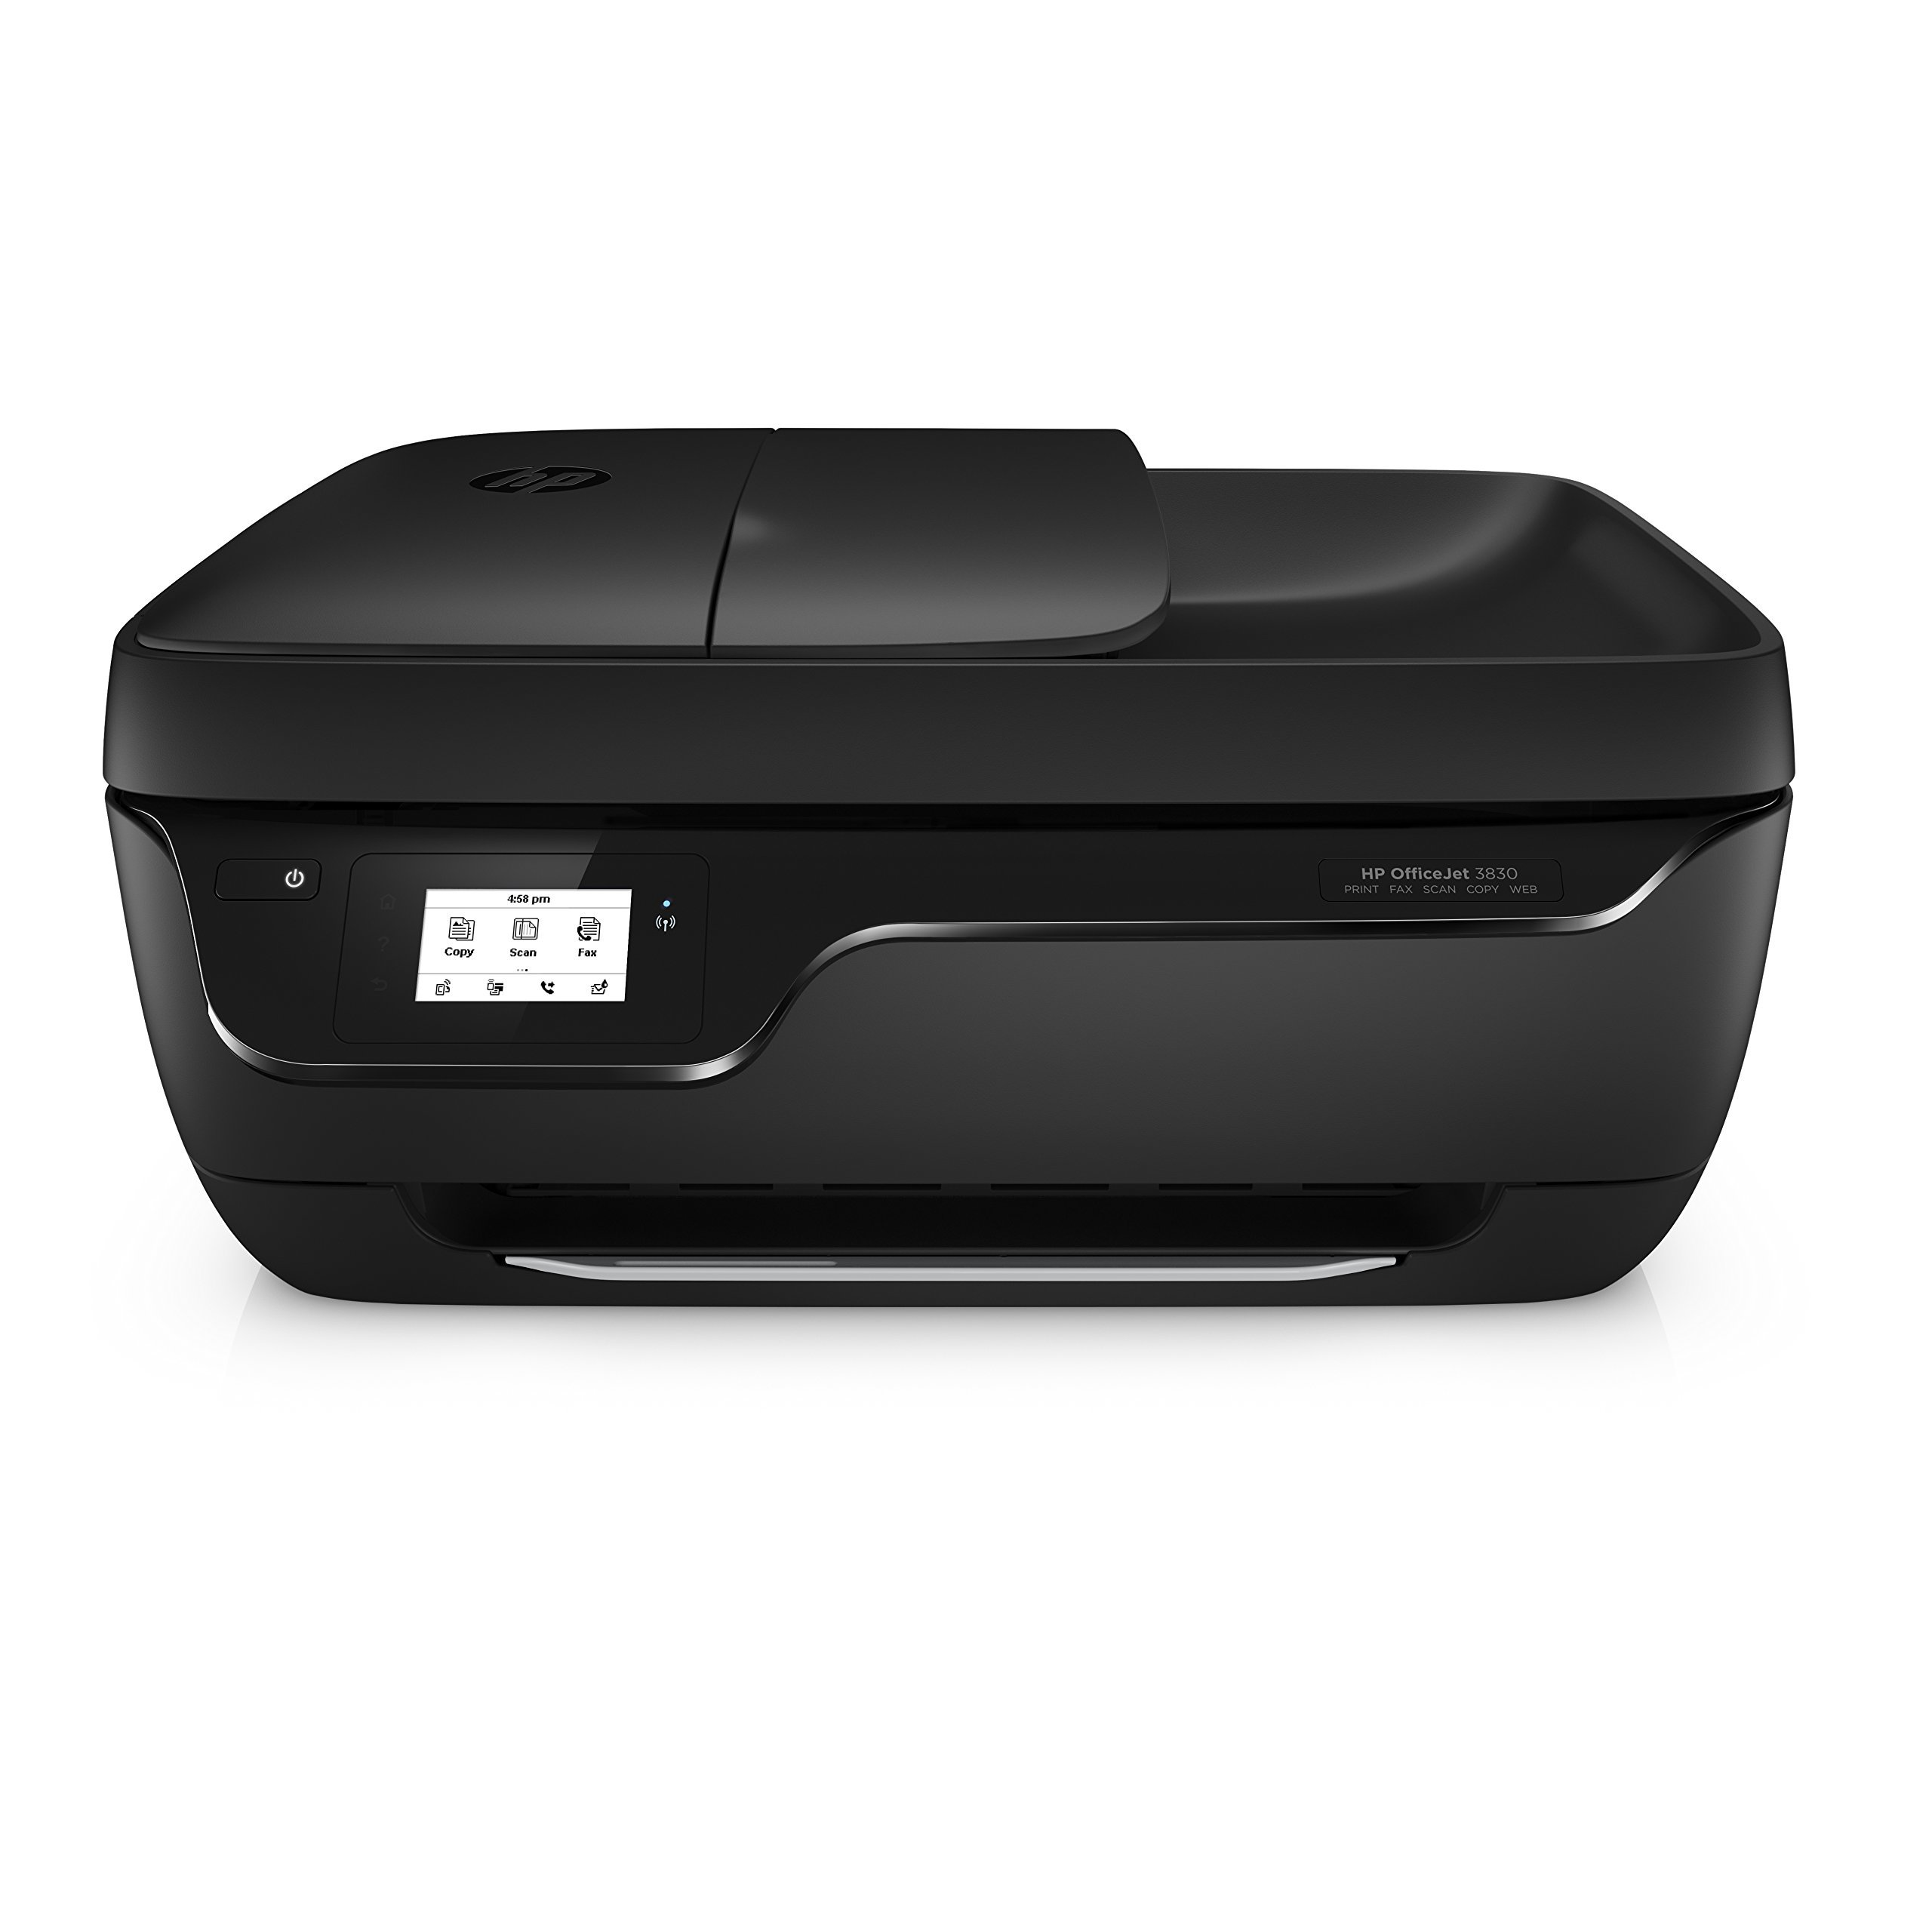 HP OfficeJet 3830 All-in-One Wireless Printer with Mobile Printing, HP Instant Ink & Amazon Dash Replenishment Ready (K7V40A) (Renewed) by HP (Image #1)